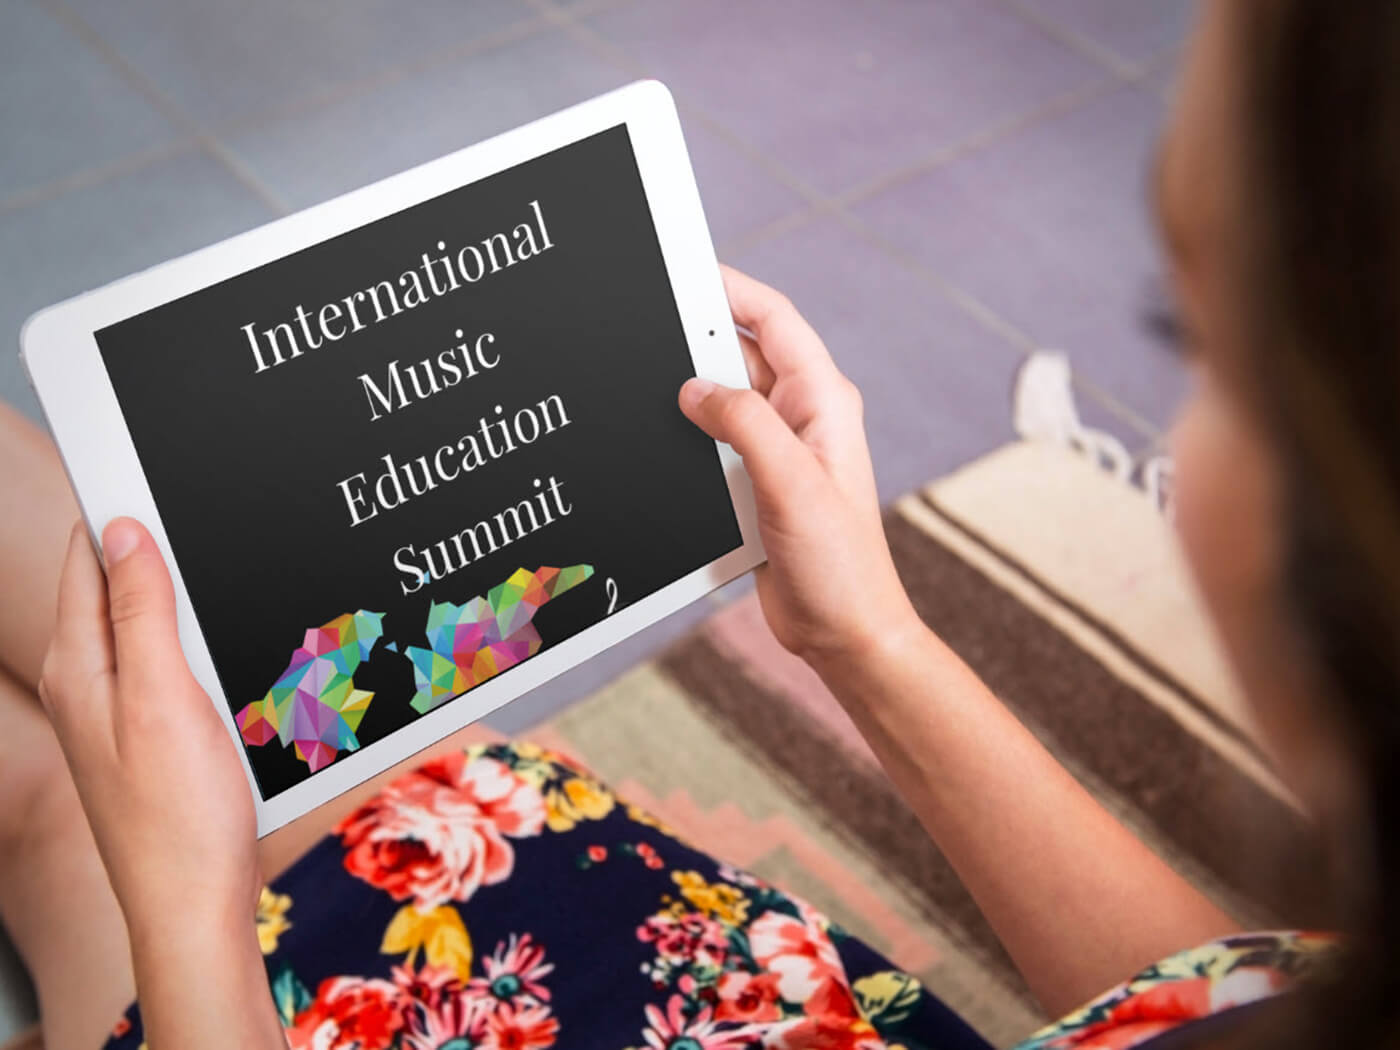 All you need to know about the 2019 International Music Education Summit